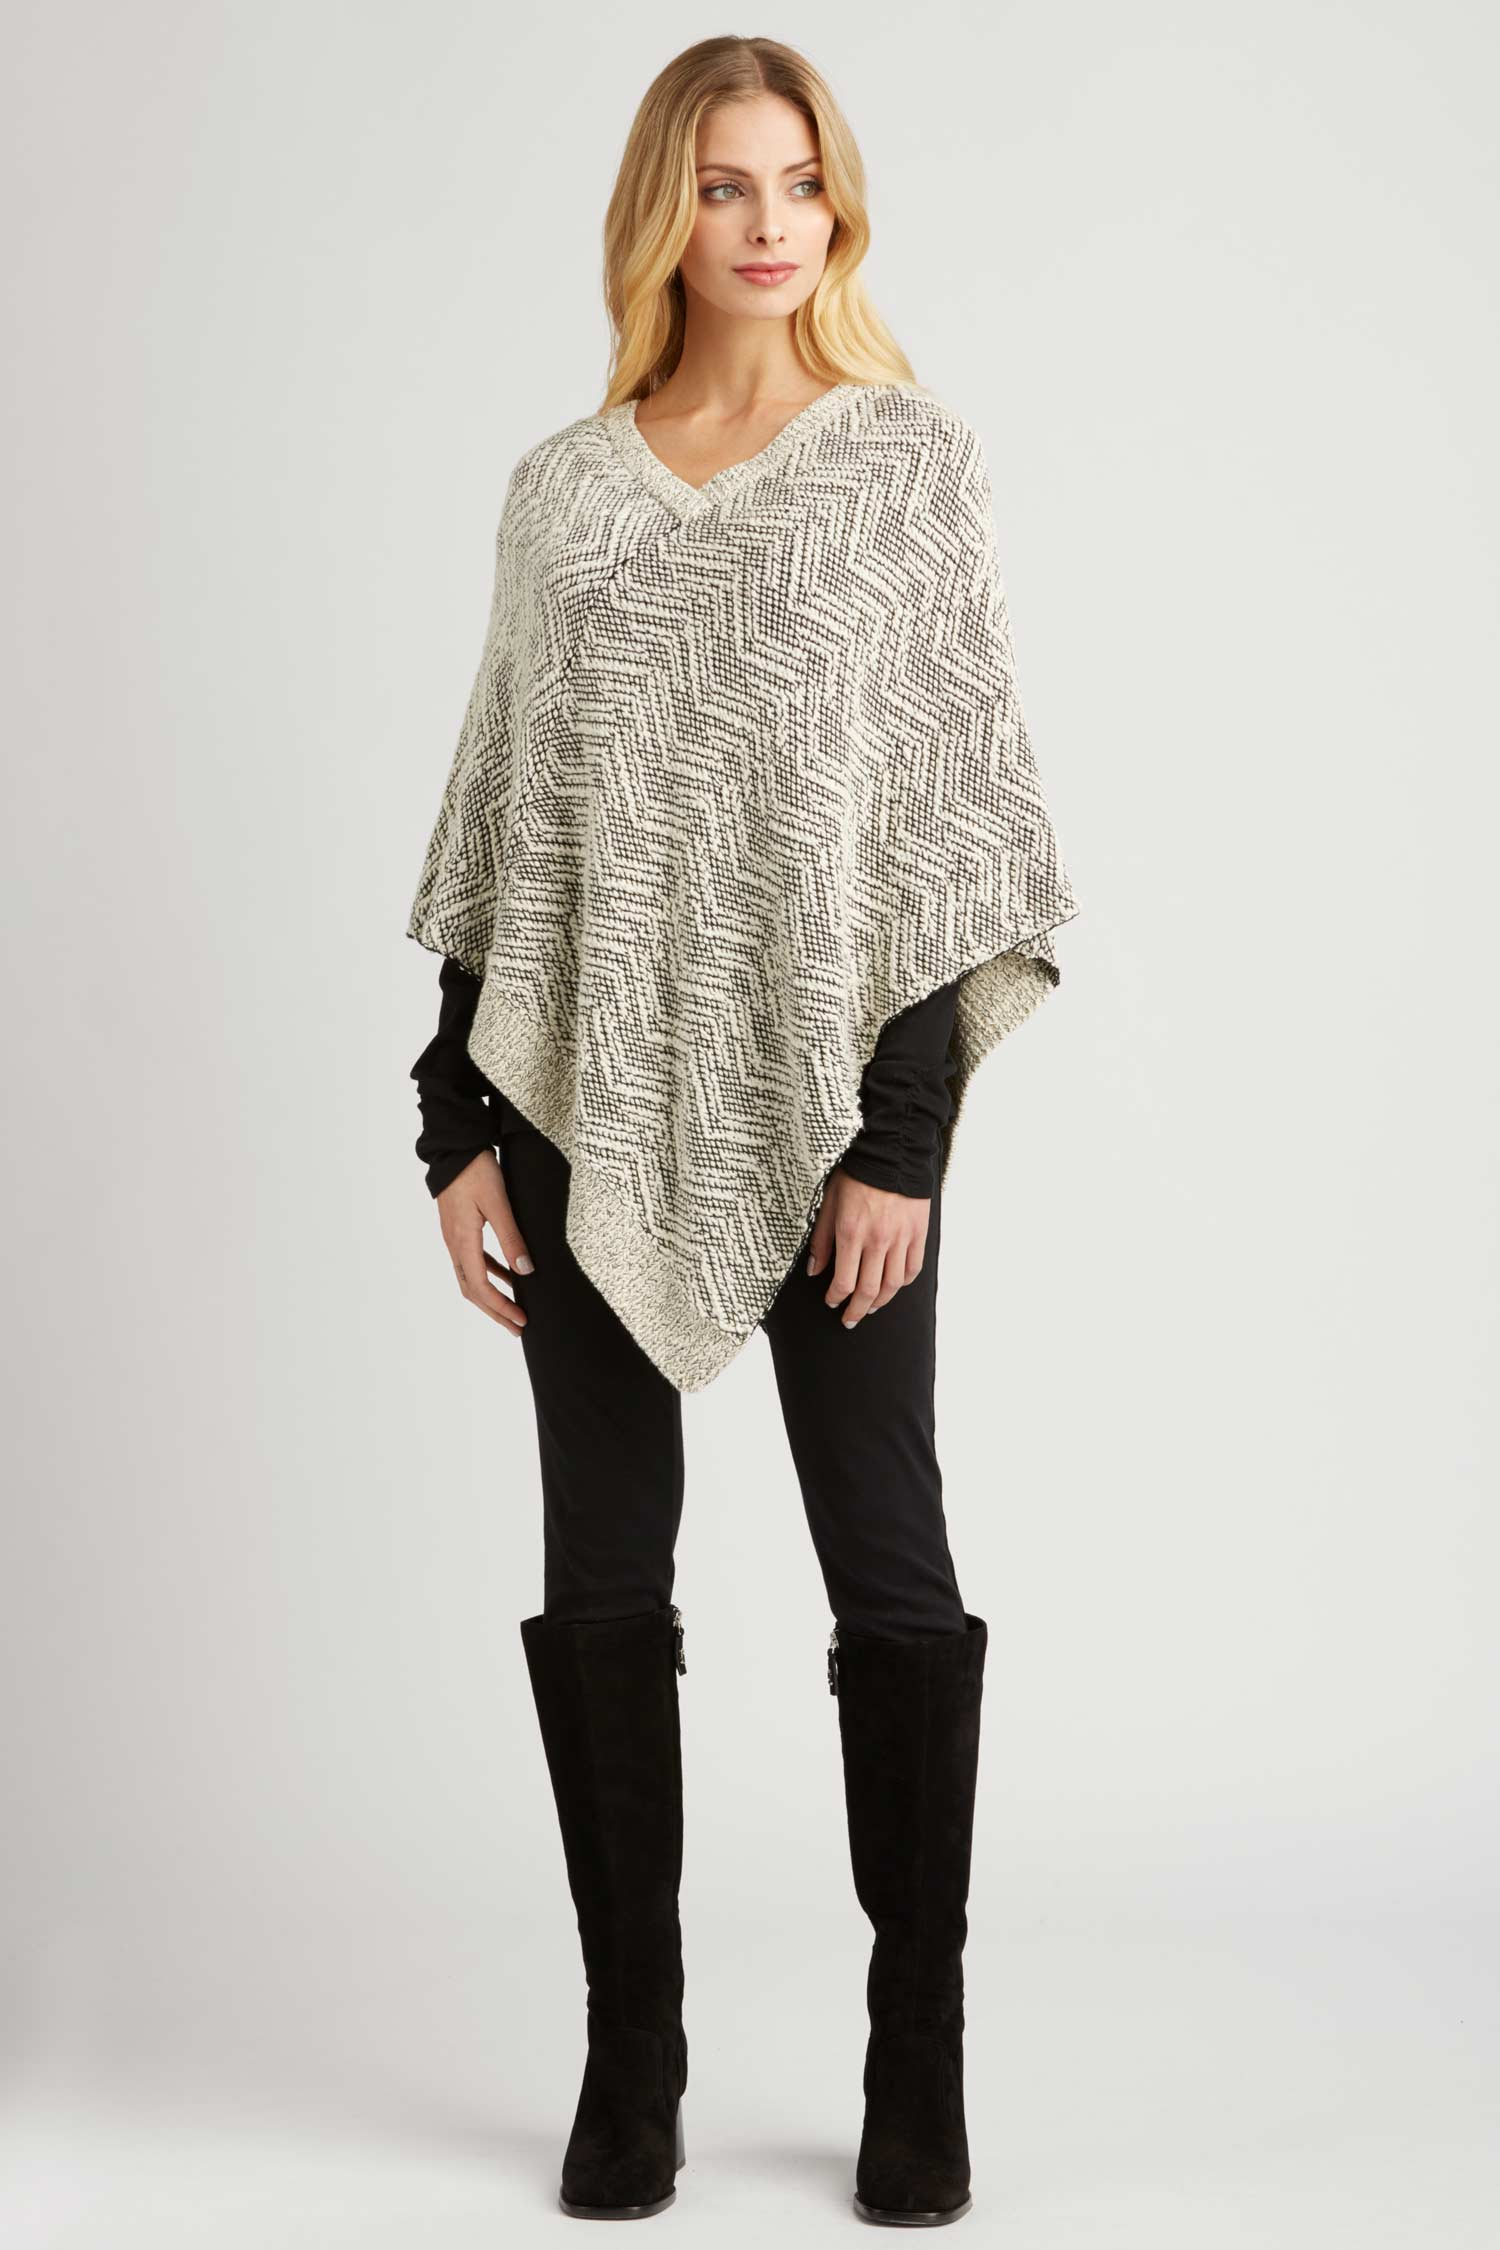 Womens Knit Poncho in Organic Cotton | Ivory Black